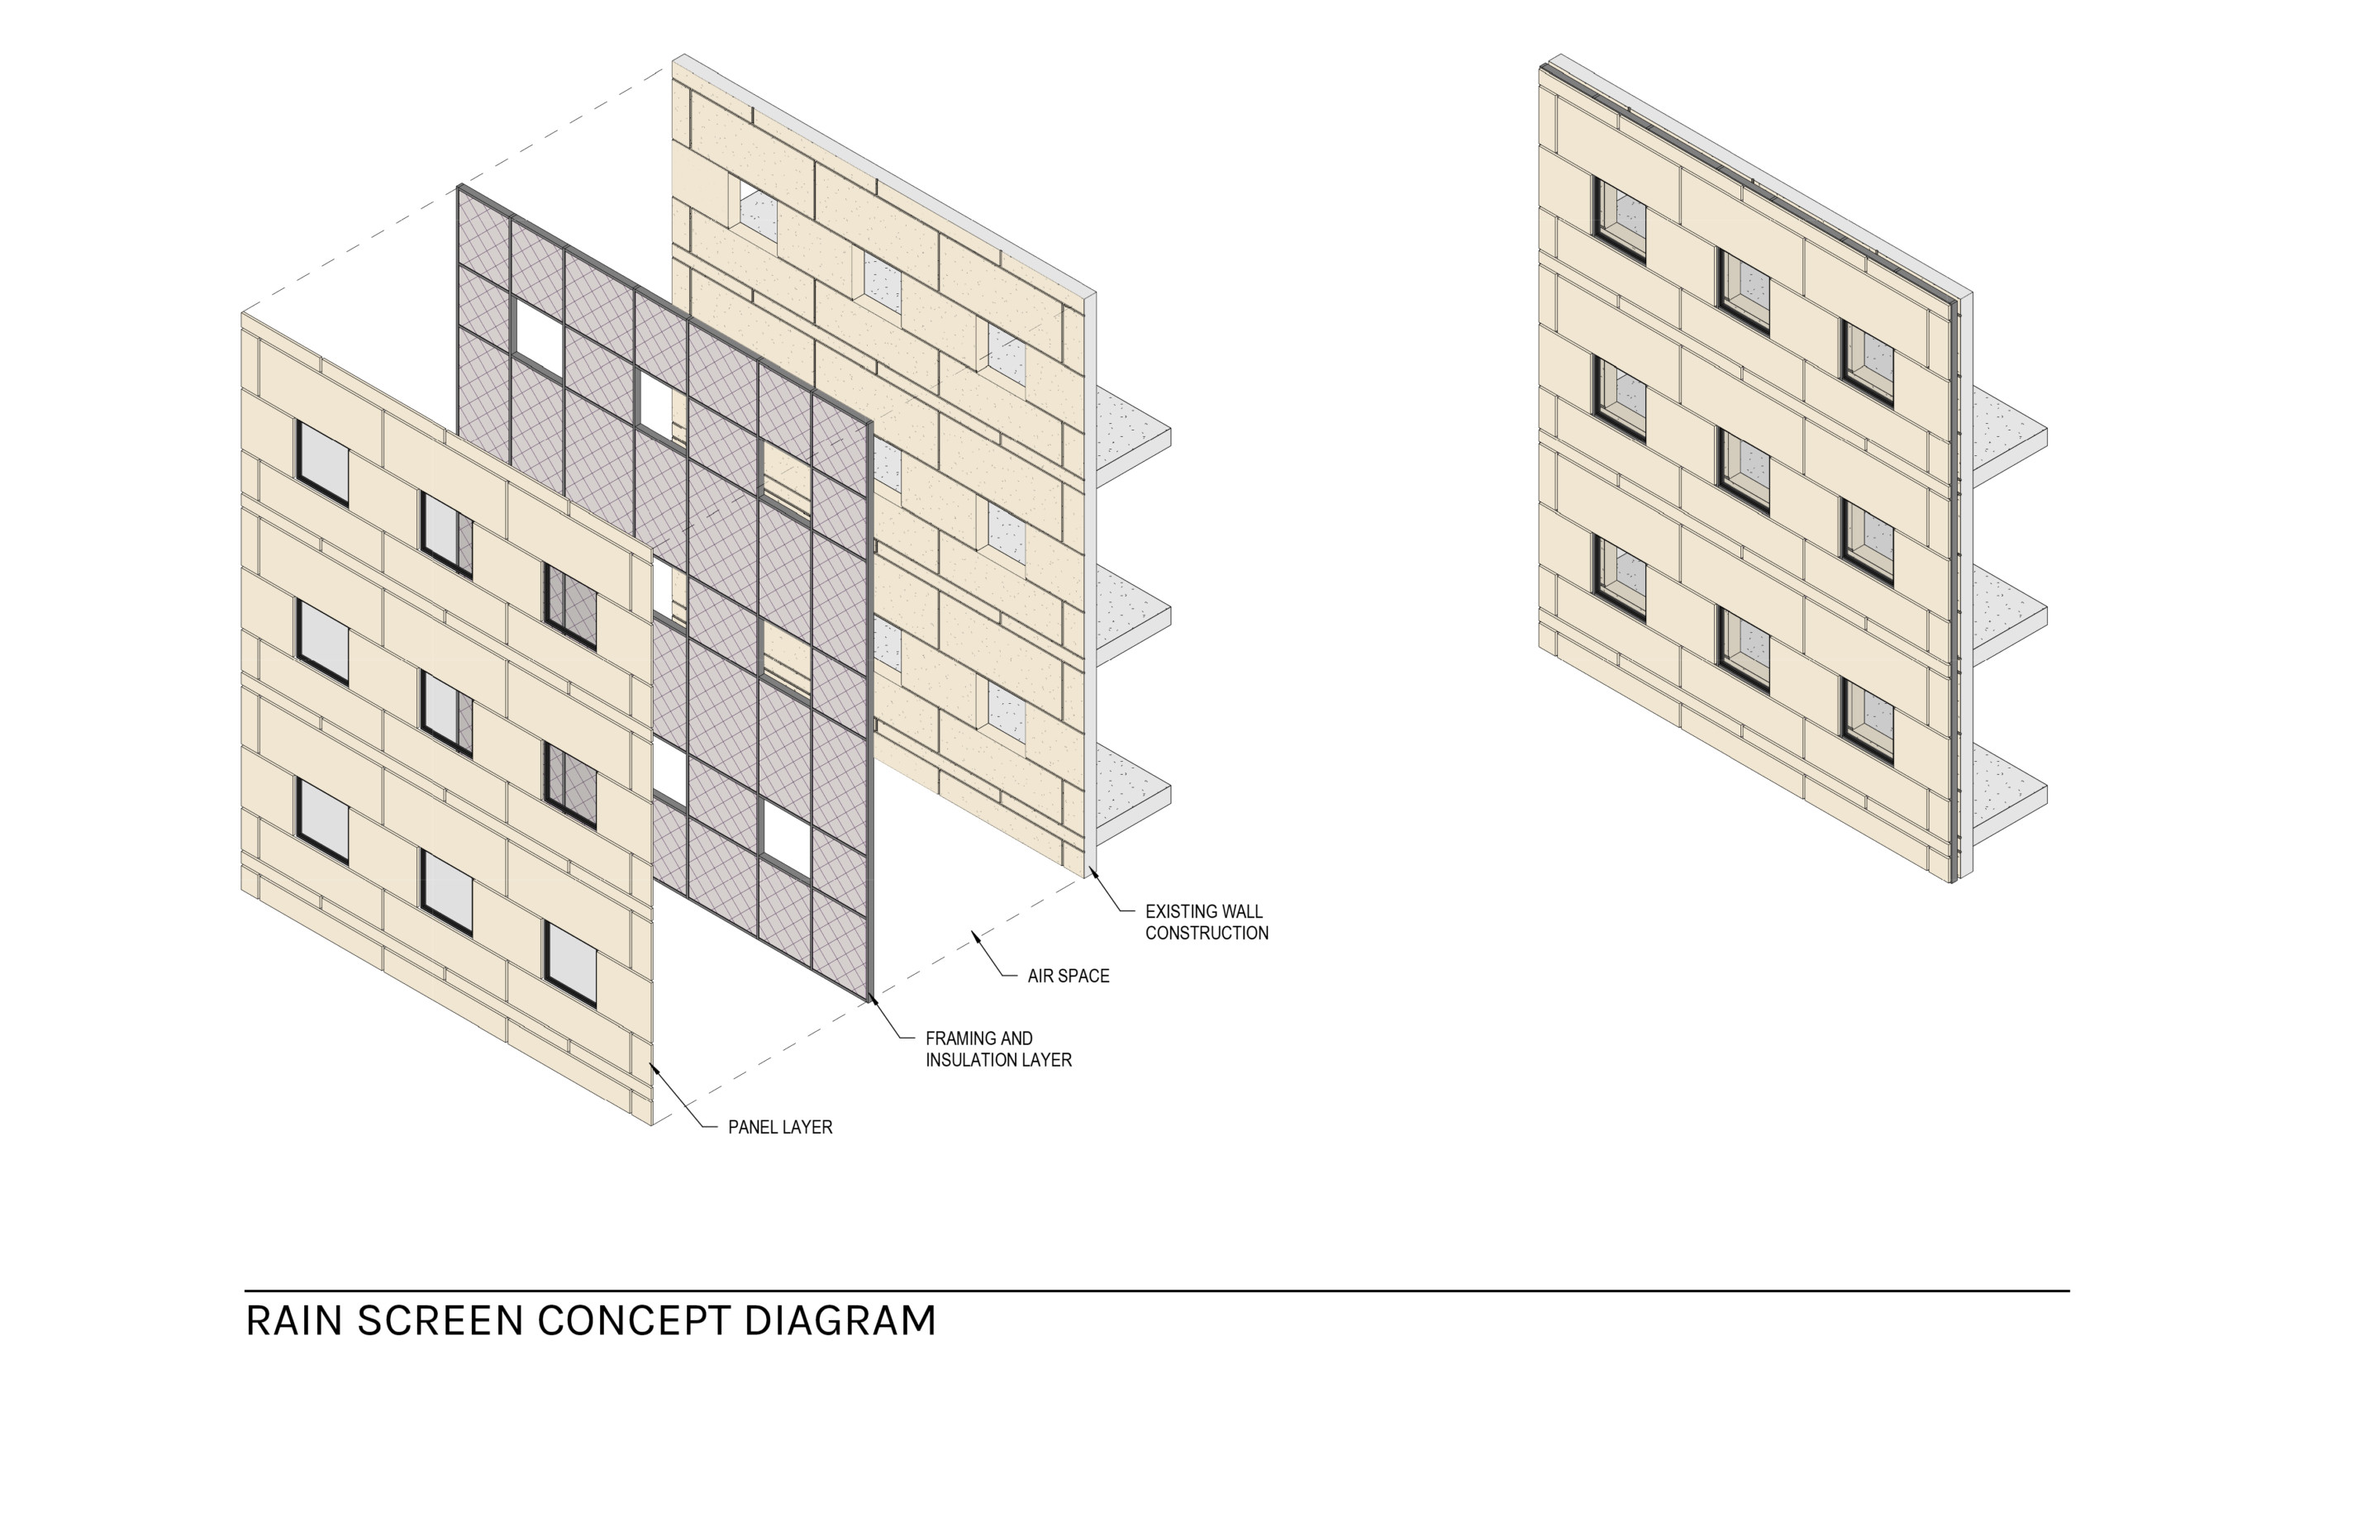 Diagram of the facade system and its over cladding of the existing volume